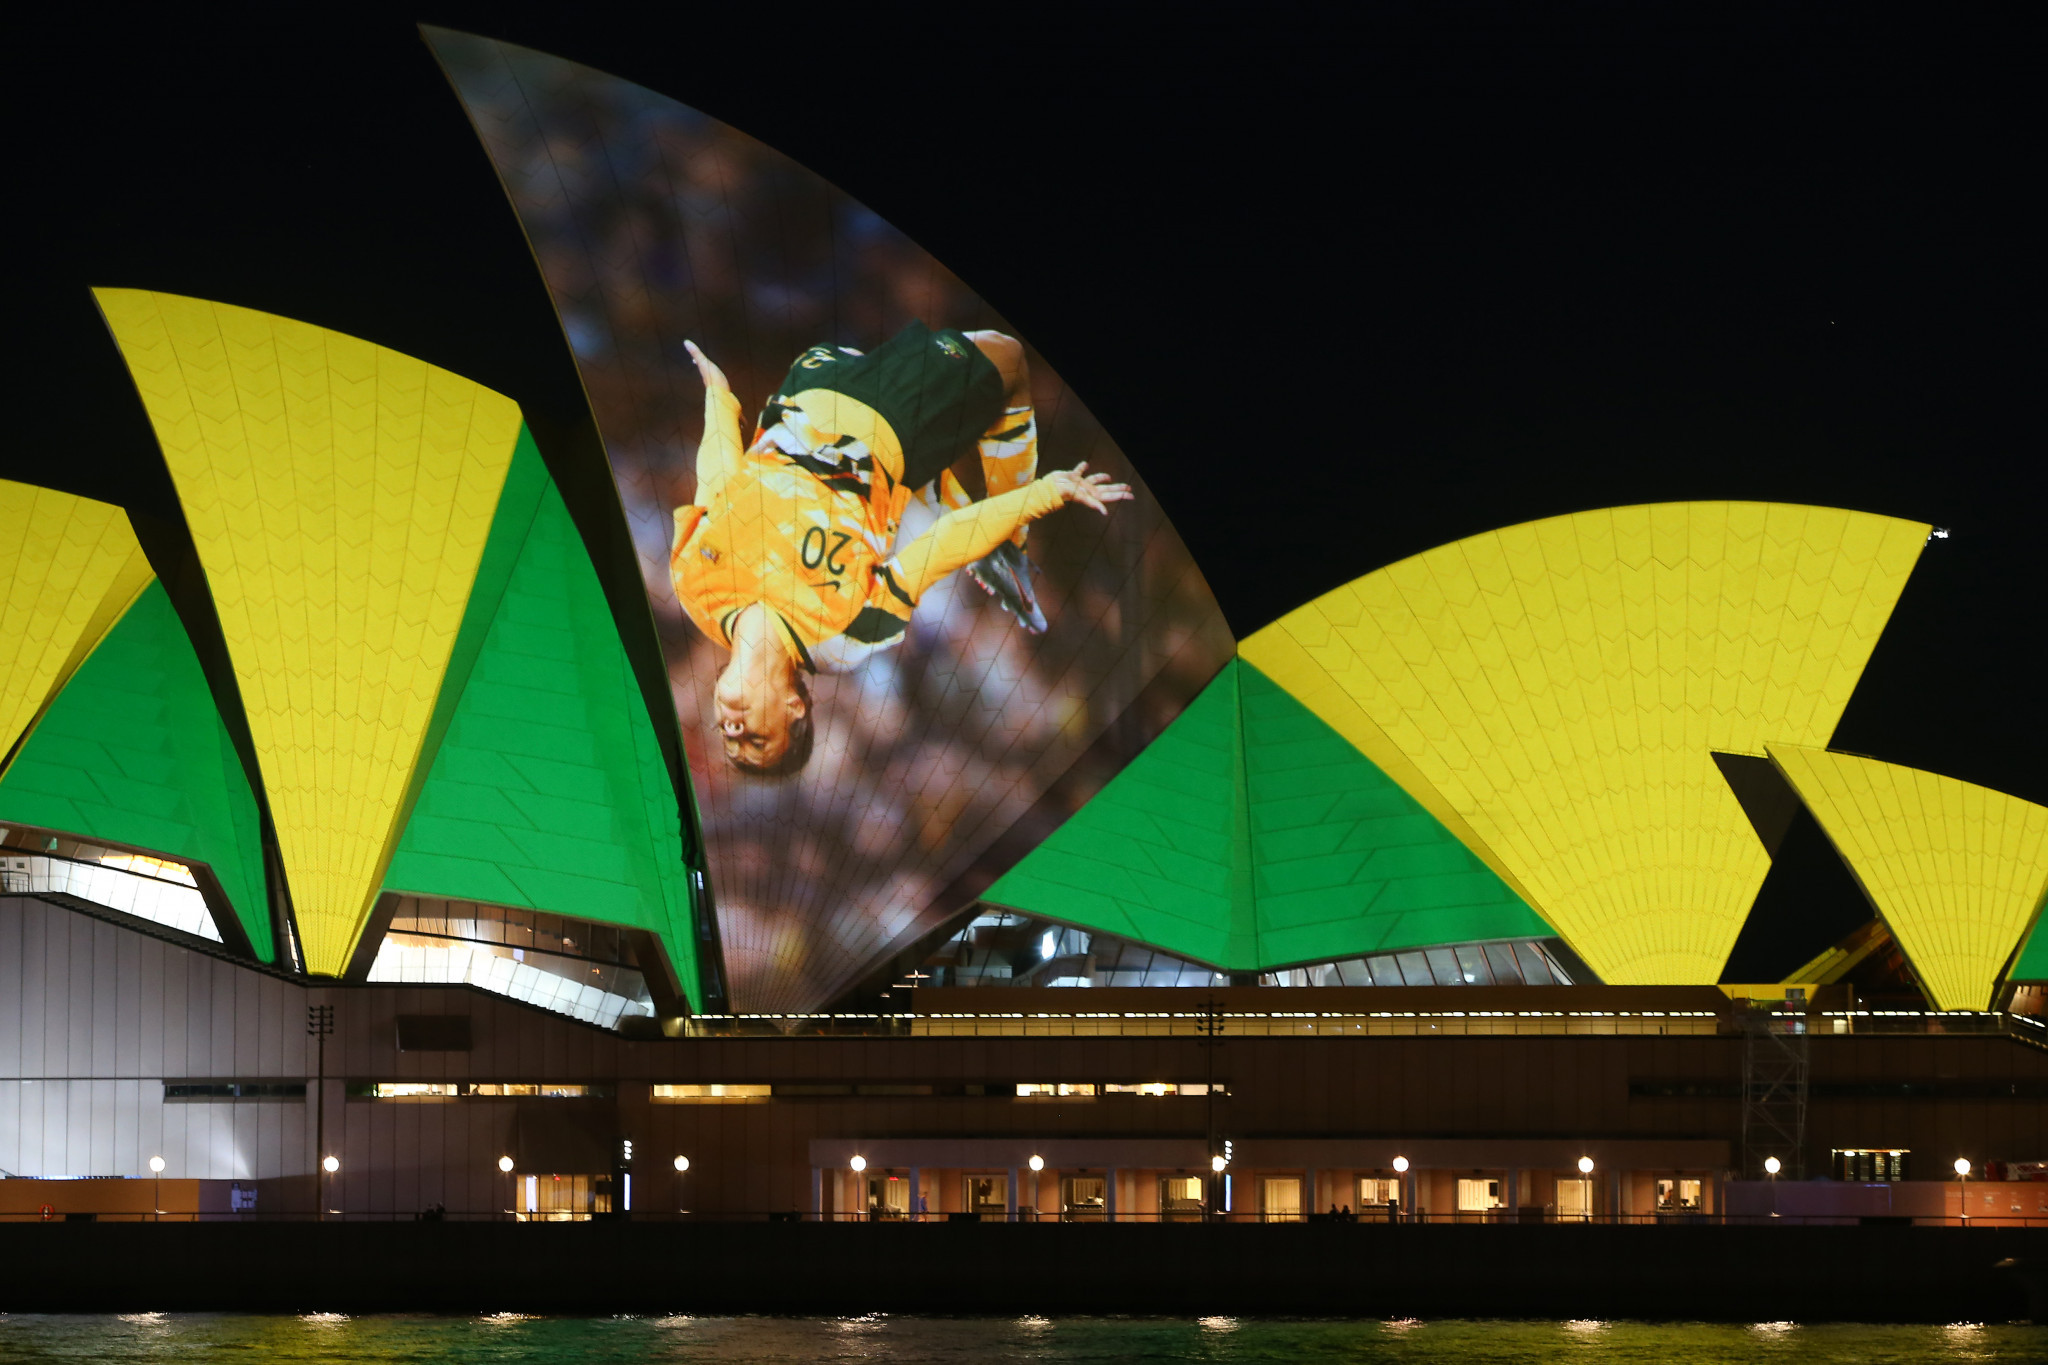 Landmarks were lit up in Australia and New Zealand to celebrate the joint bid for the 2023 Women's World Cup ©Getty Images